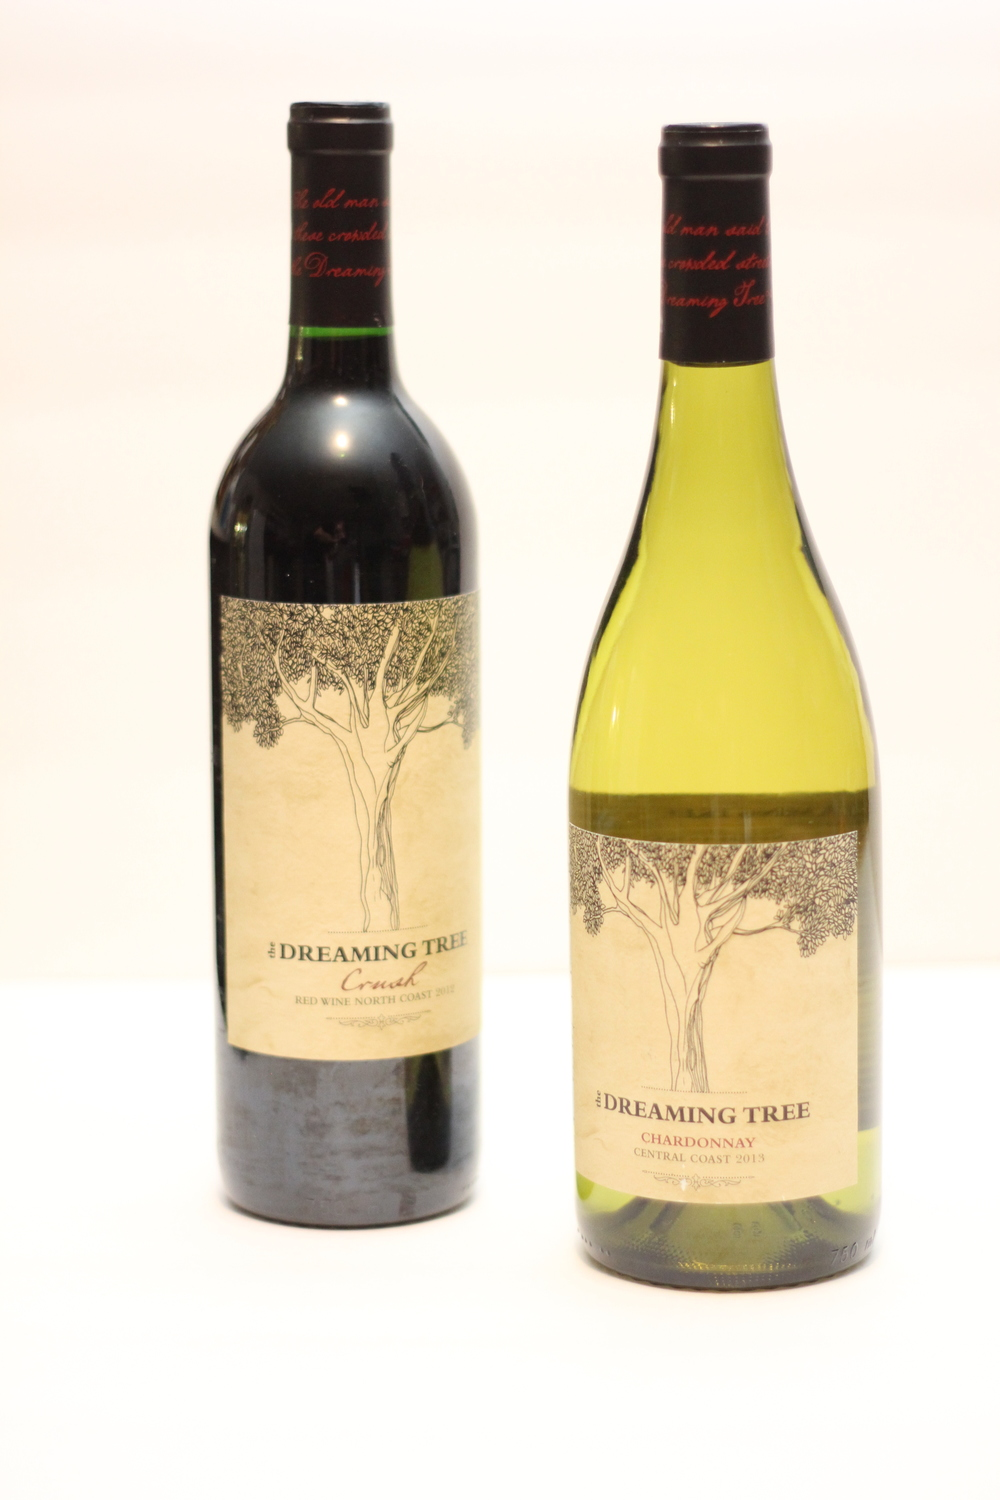 the Dreaming Tree: A Wine For All